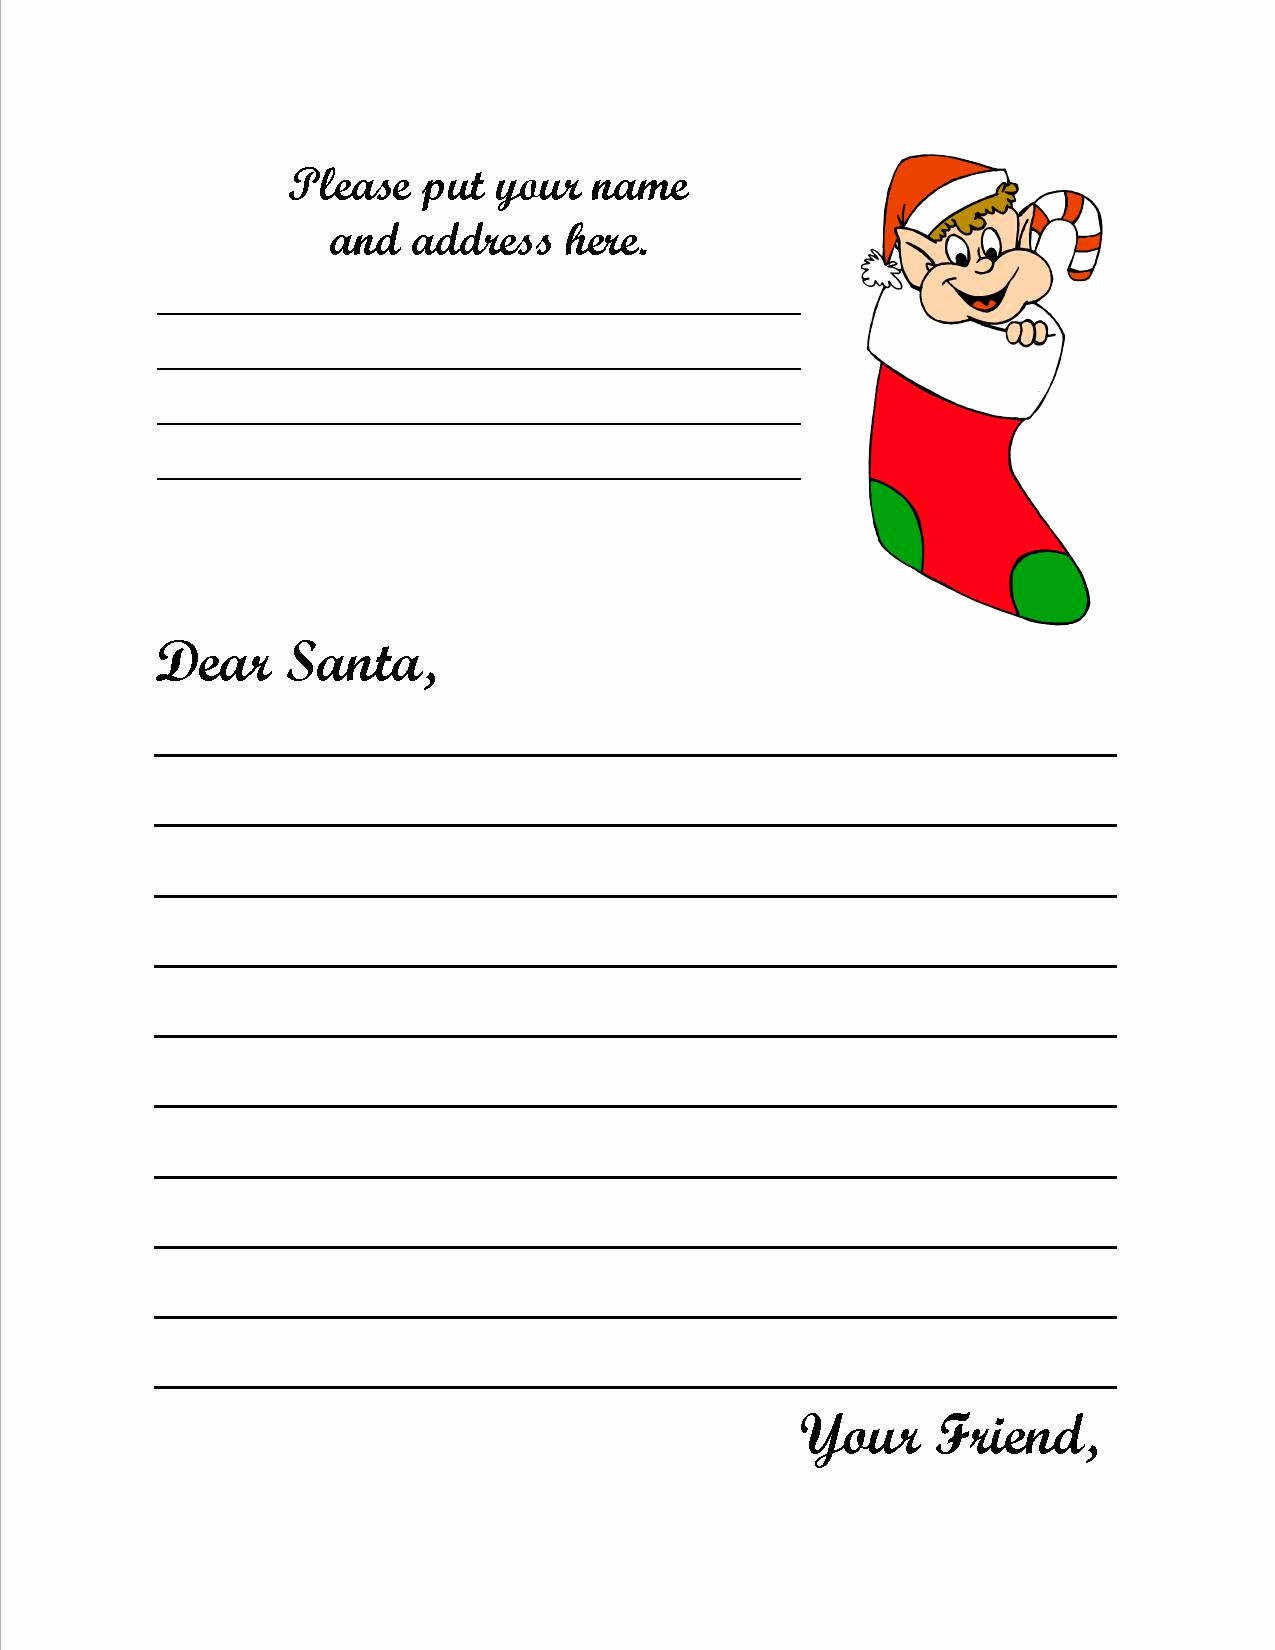 Letter to Santa Claus Templates Awesome 8 Best Of Santa Claus Letter Template Printable